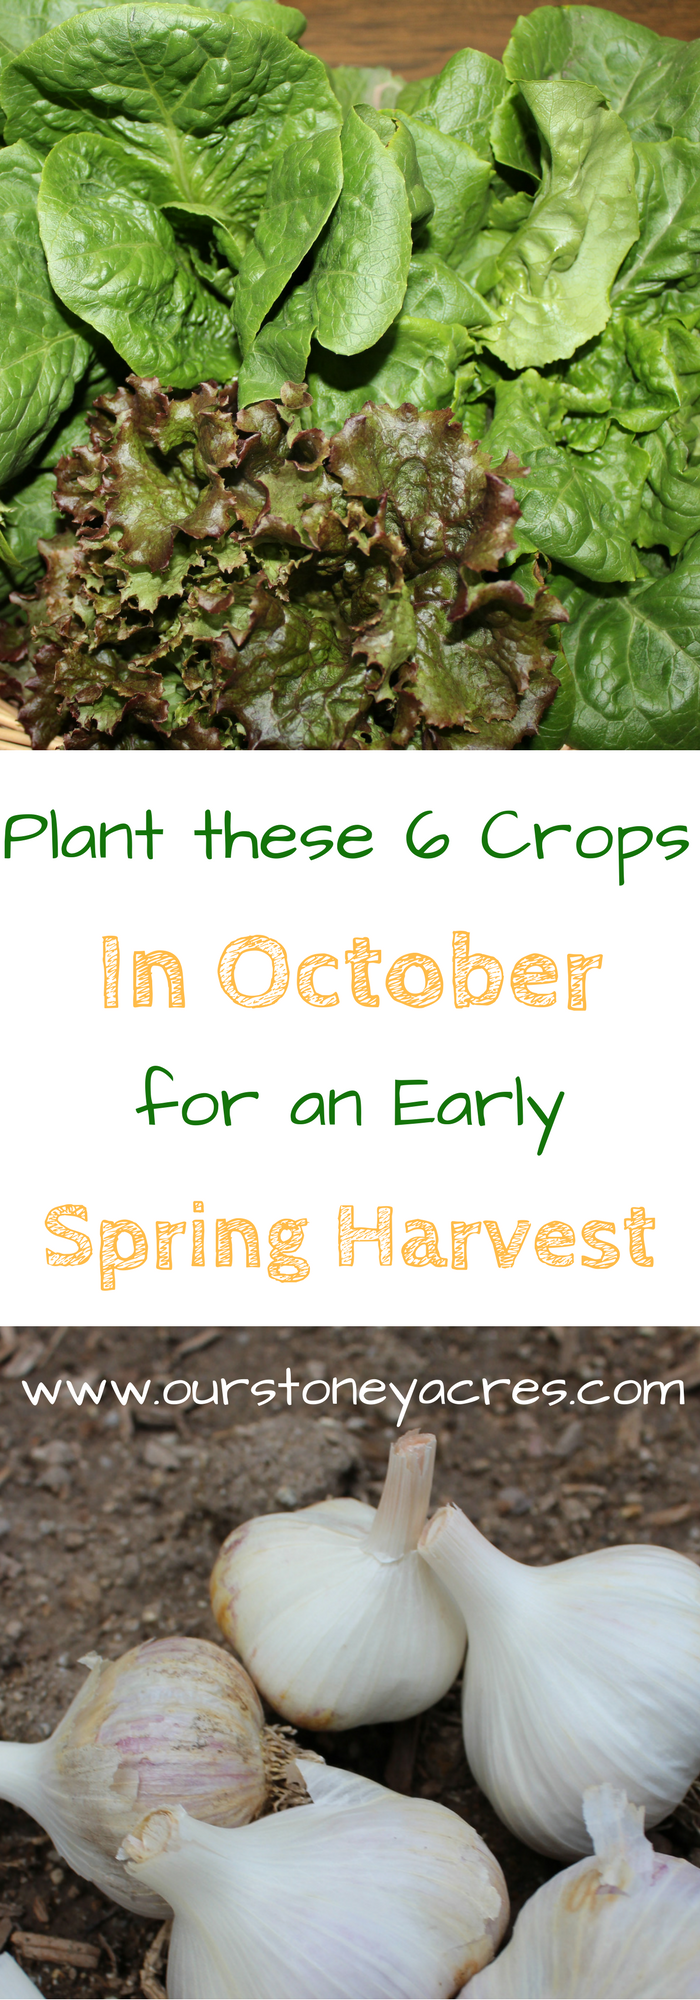 october planting guide 3 as the weather cools and you start